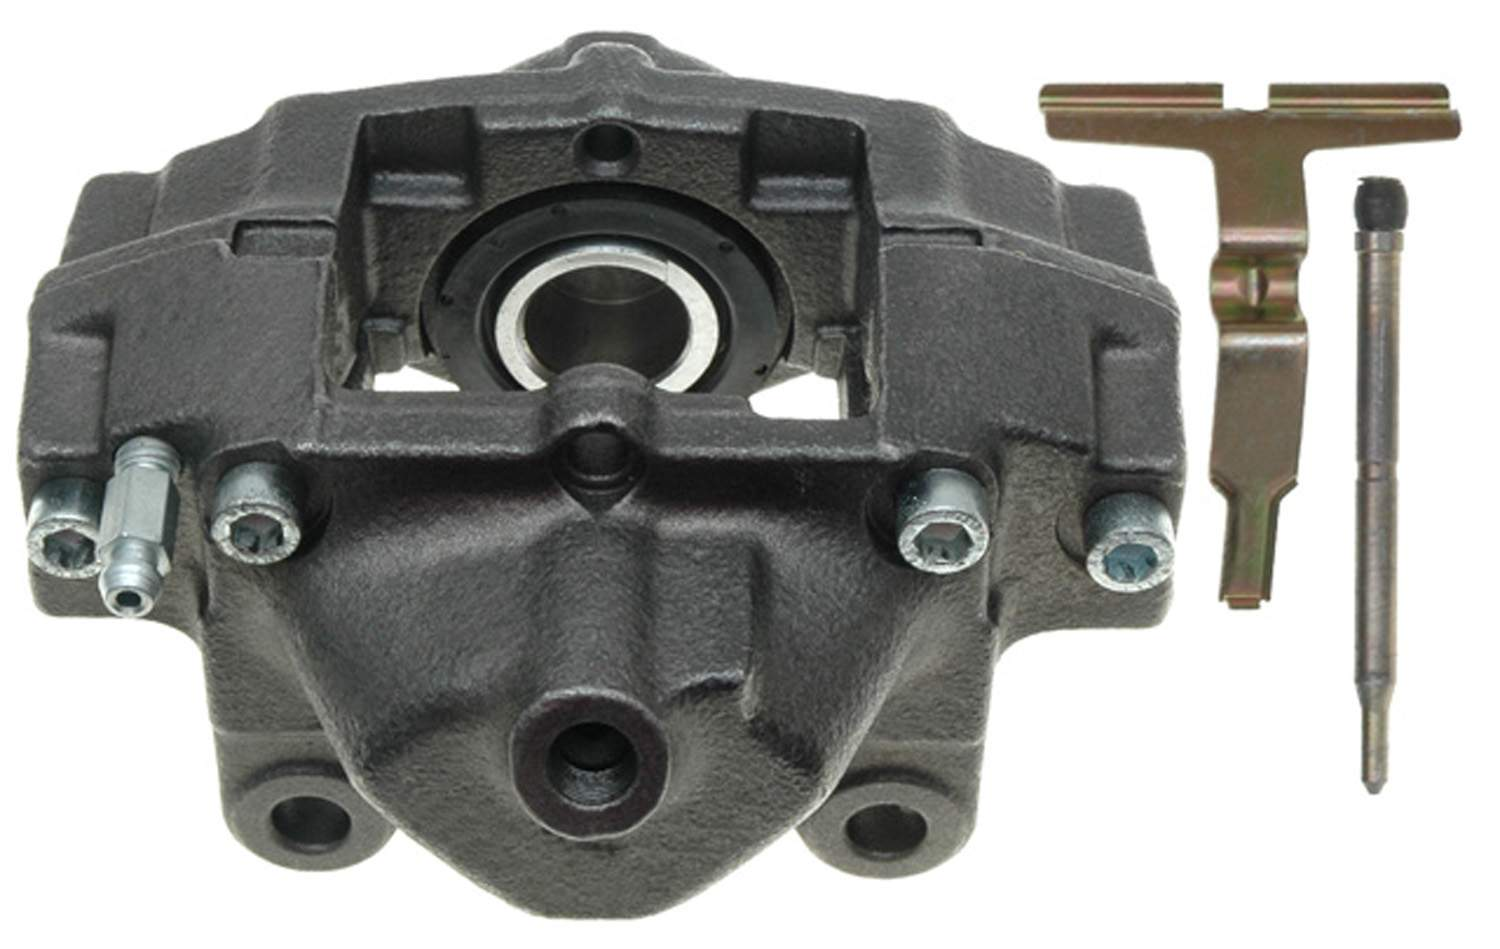 ACDELCO PROFESSIONAL BRAKES - Reman Friction Ready Non-Coated Disc Brake Caliper (Rear Right) - ADU 18FR2069